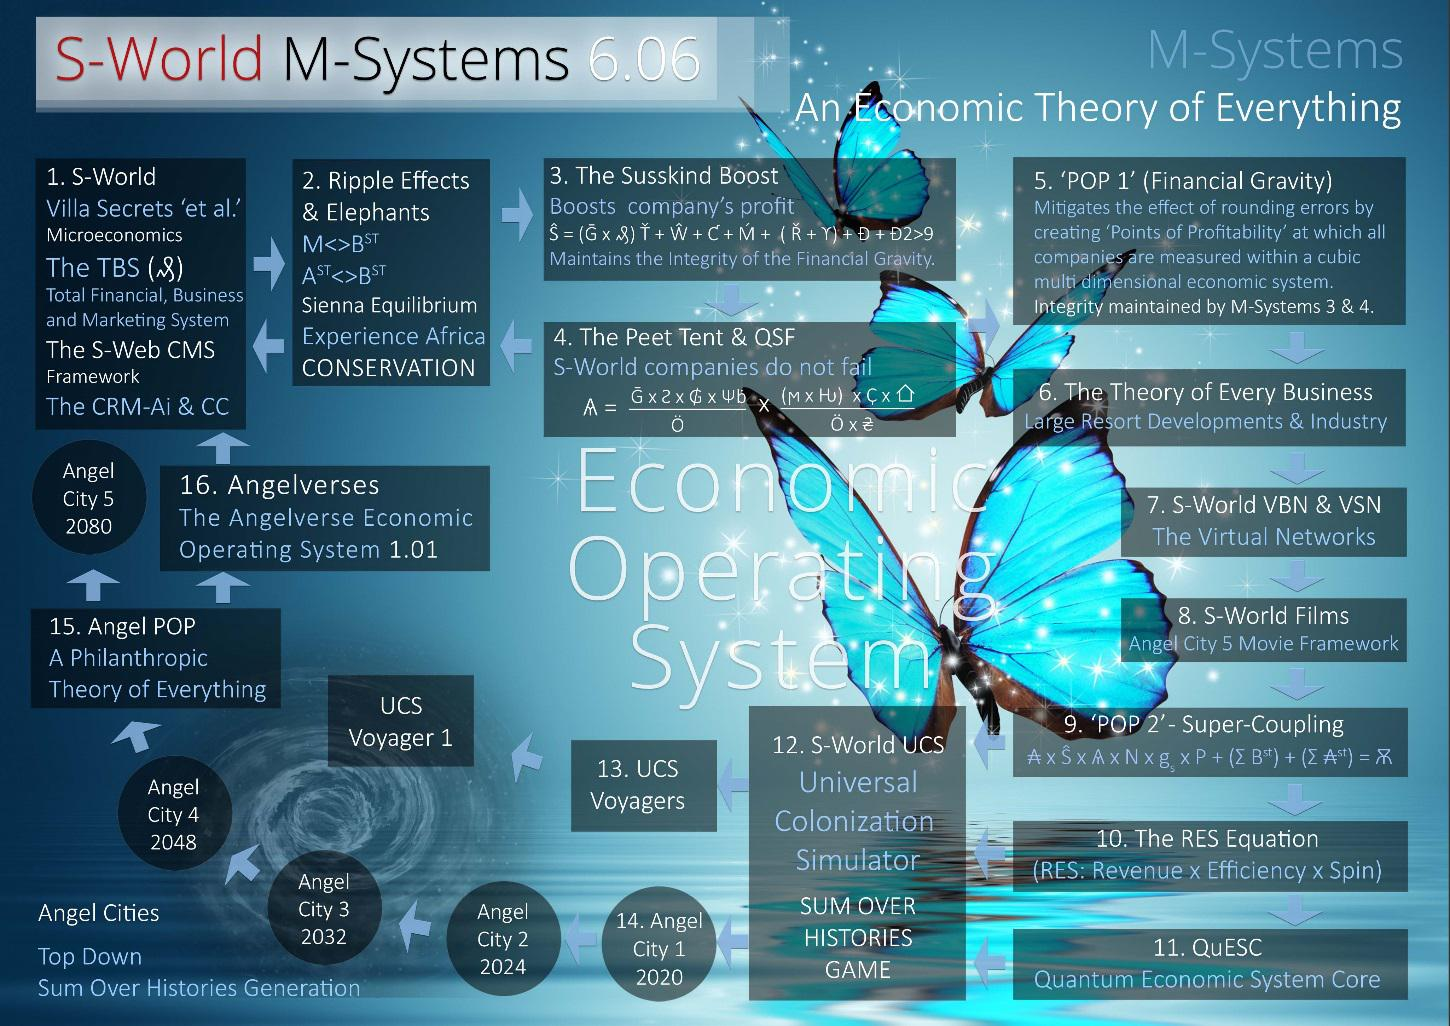 S-World M-Systems 6.06 - An Ecnomic Theory of Everything